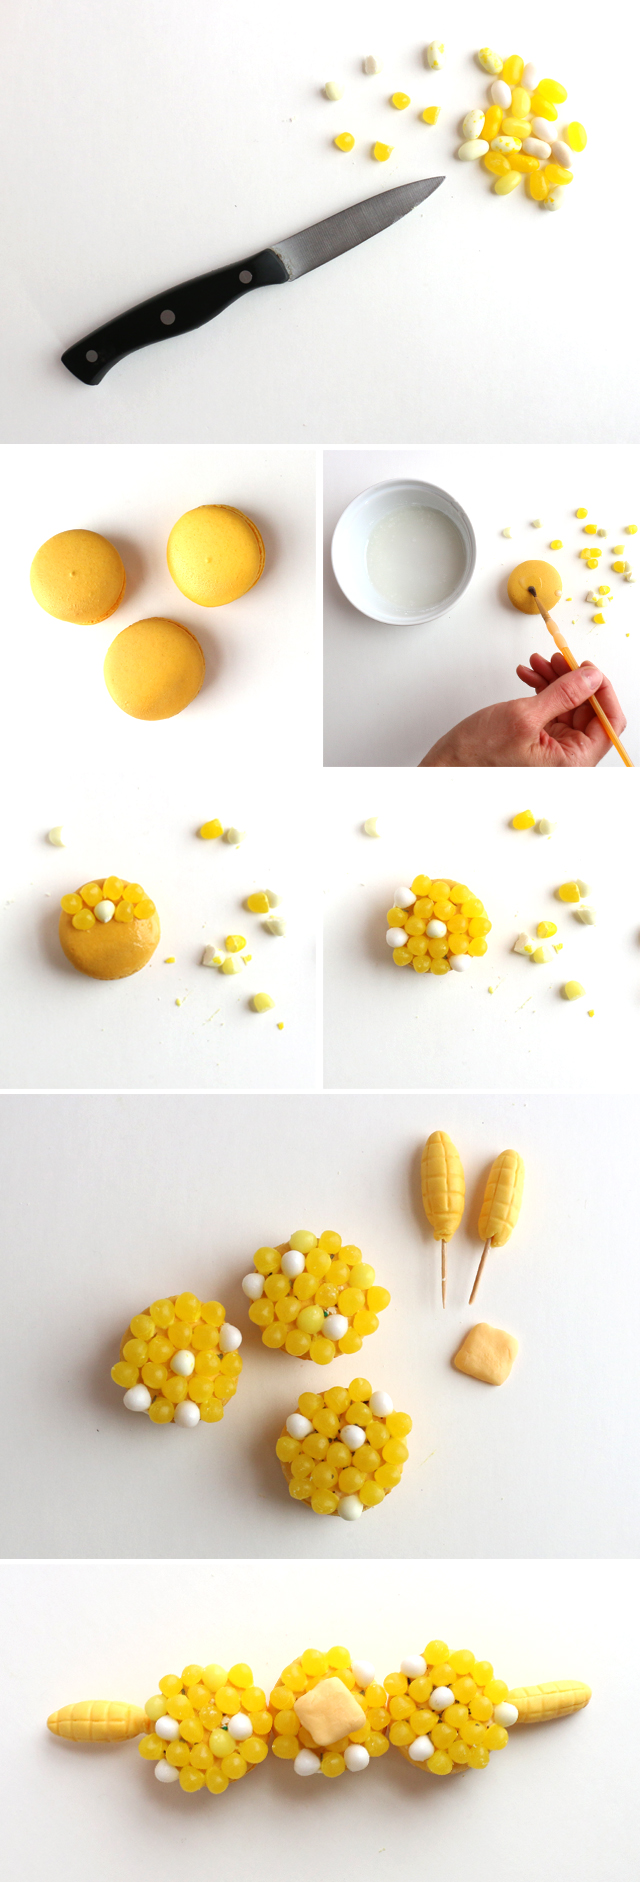 corn on the cob diy